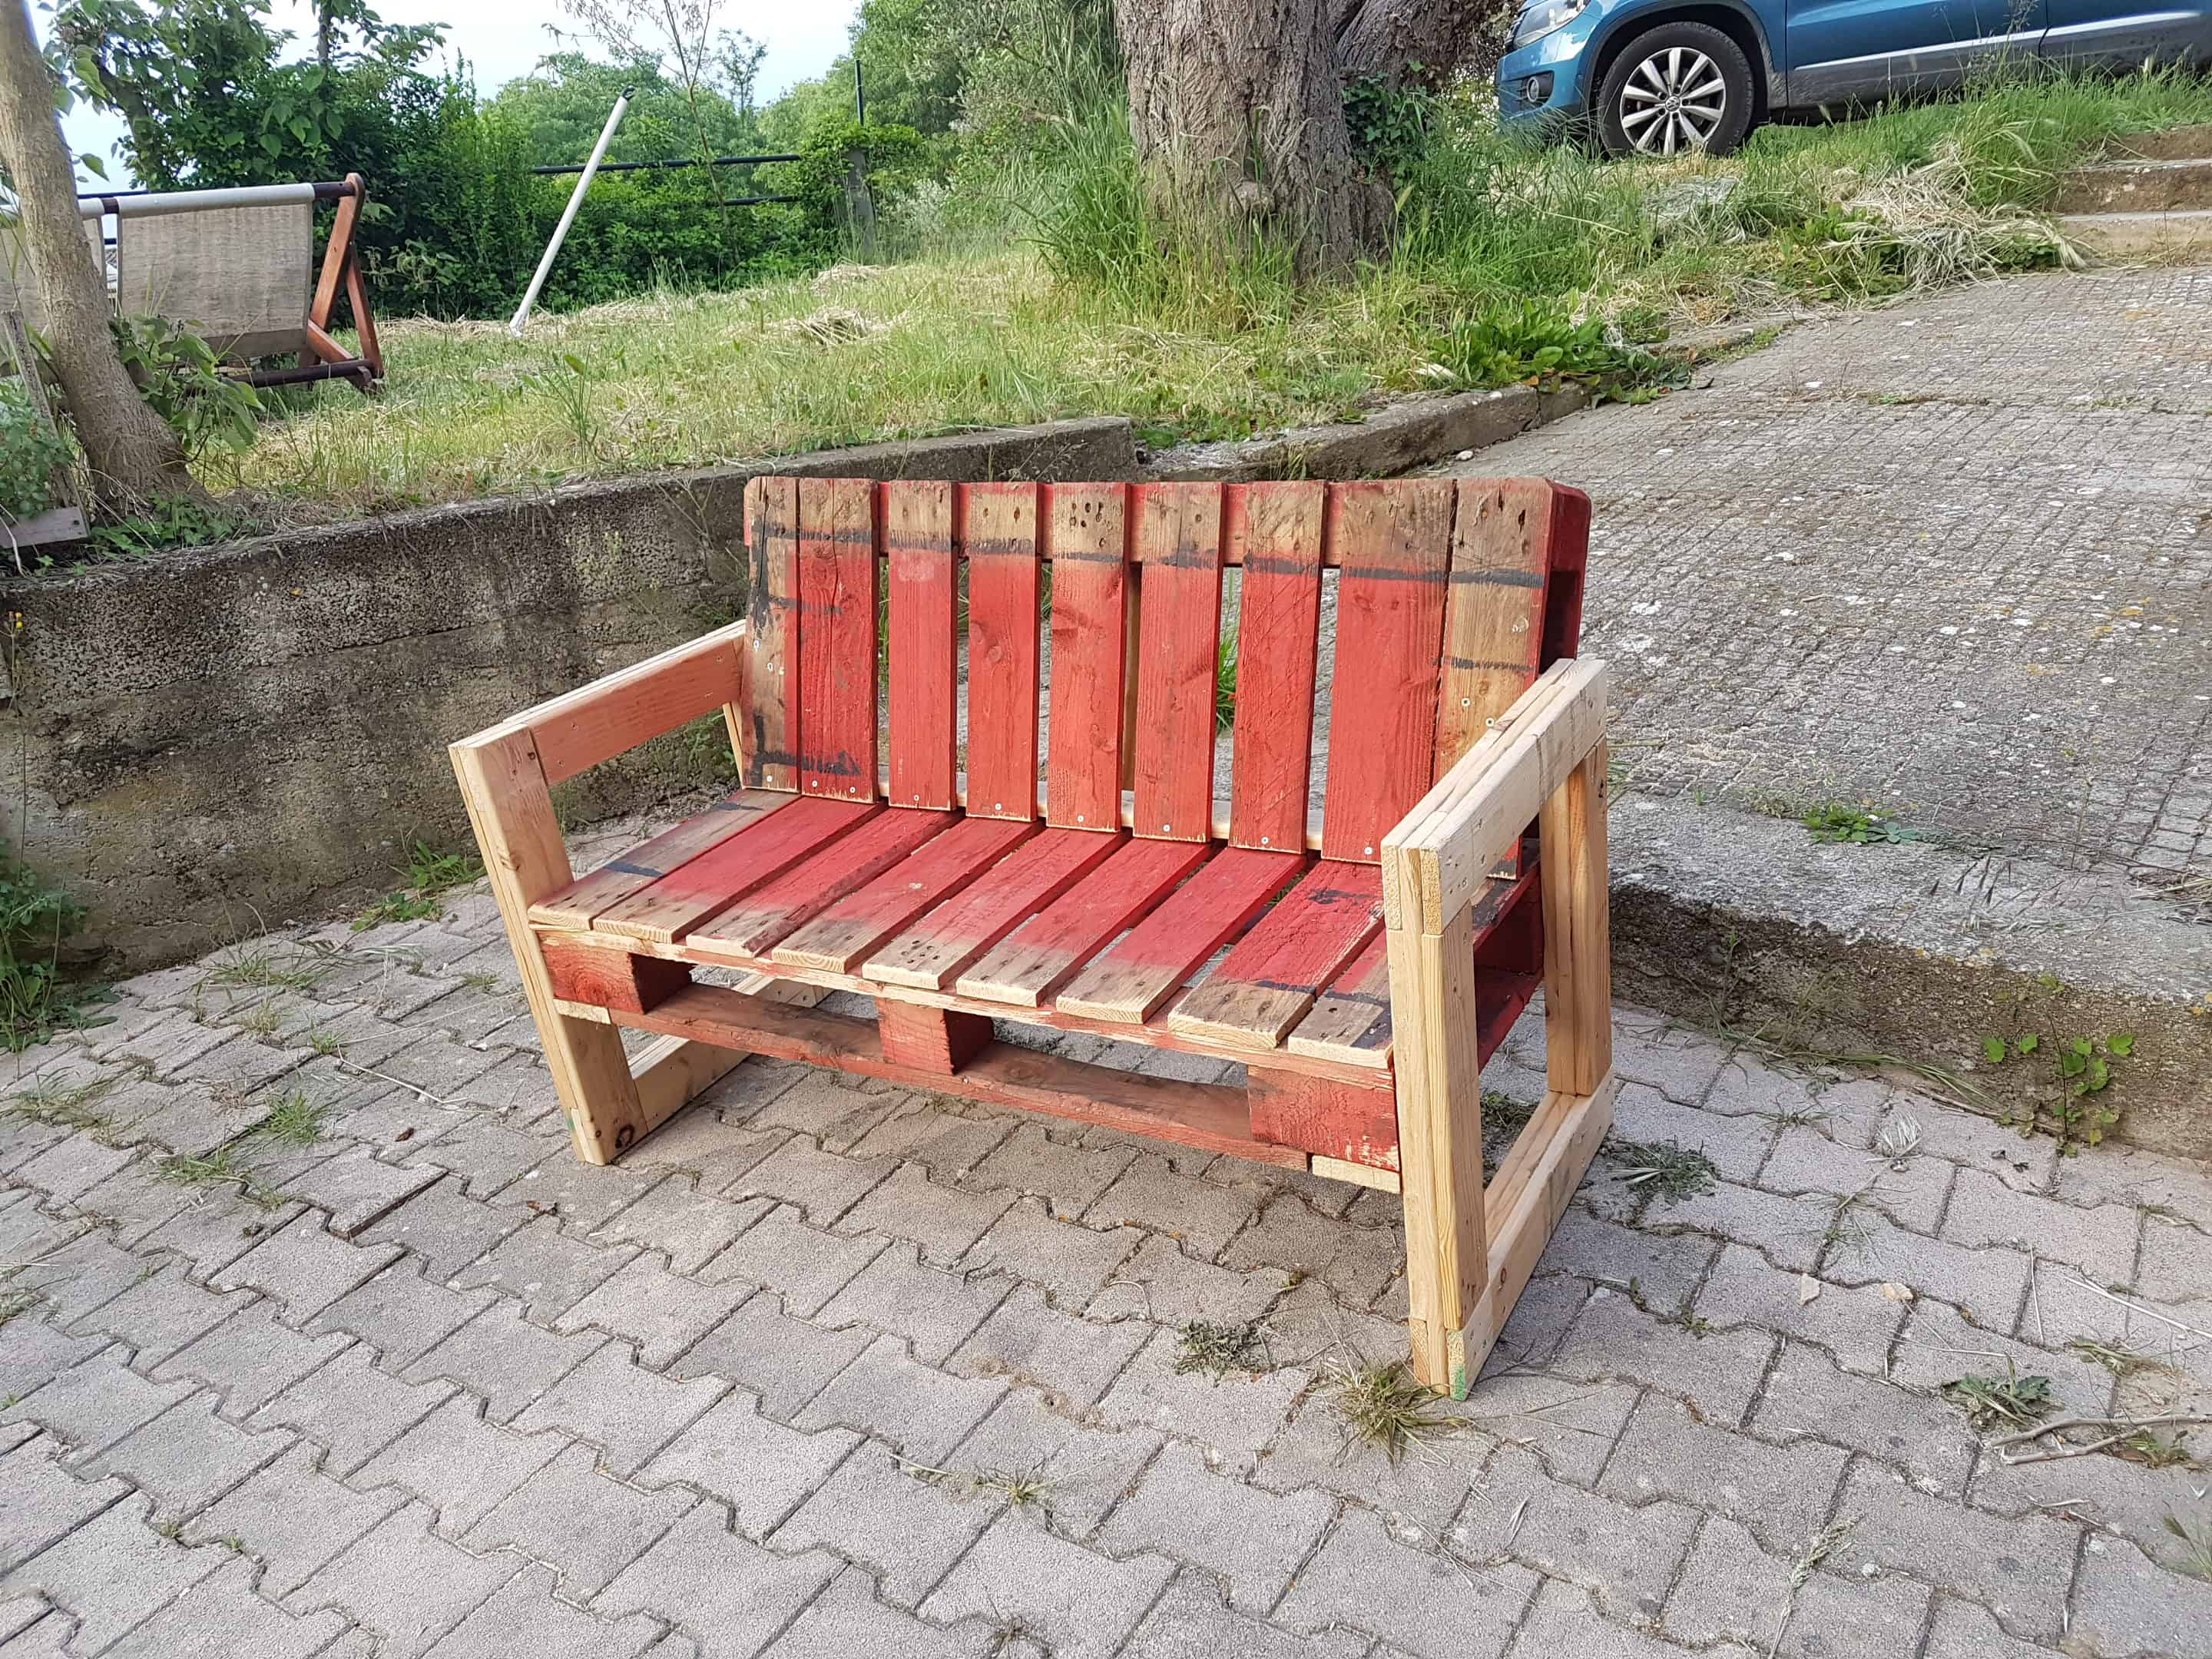 Red Pallet Garden Bench For Outdoor Relaxing 1001 Pallets